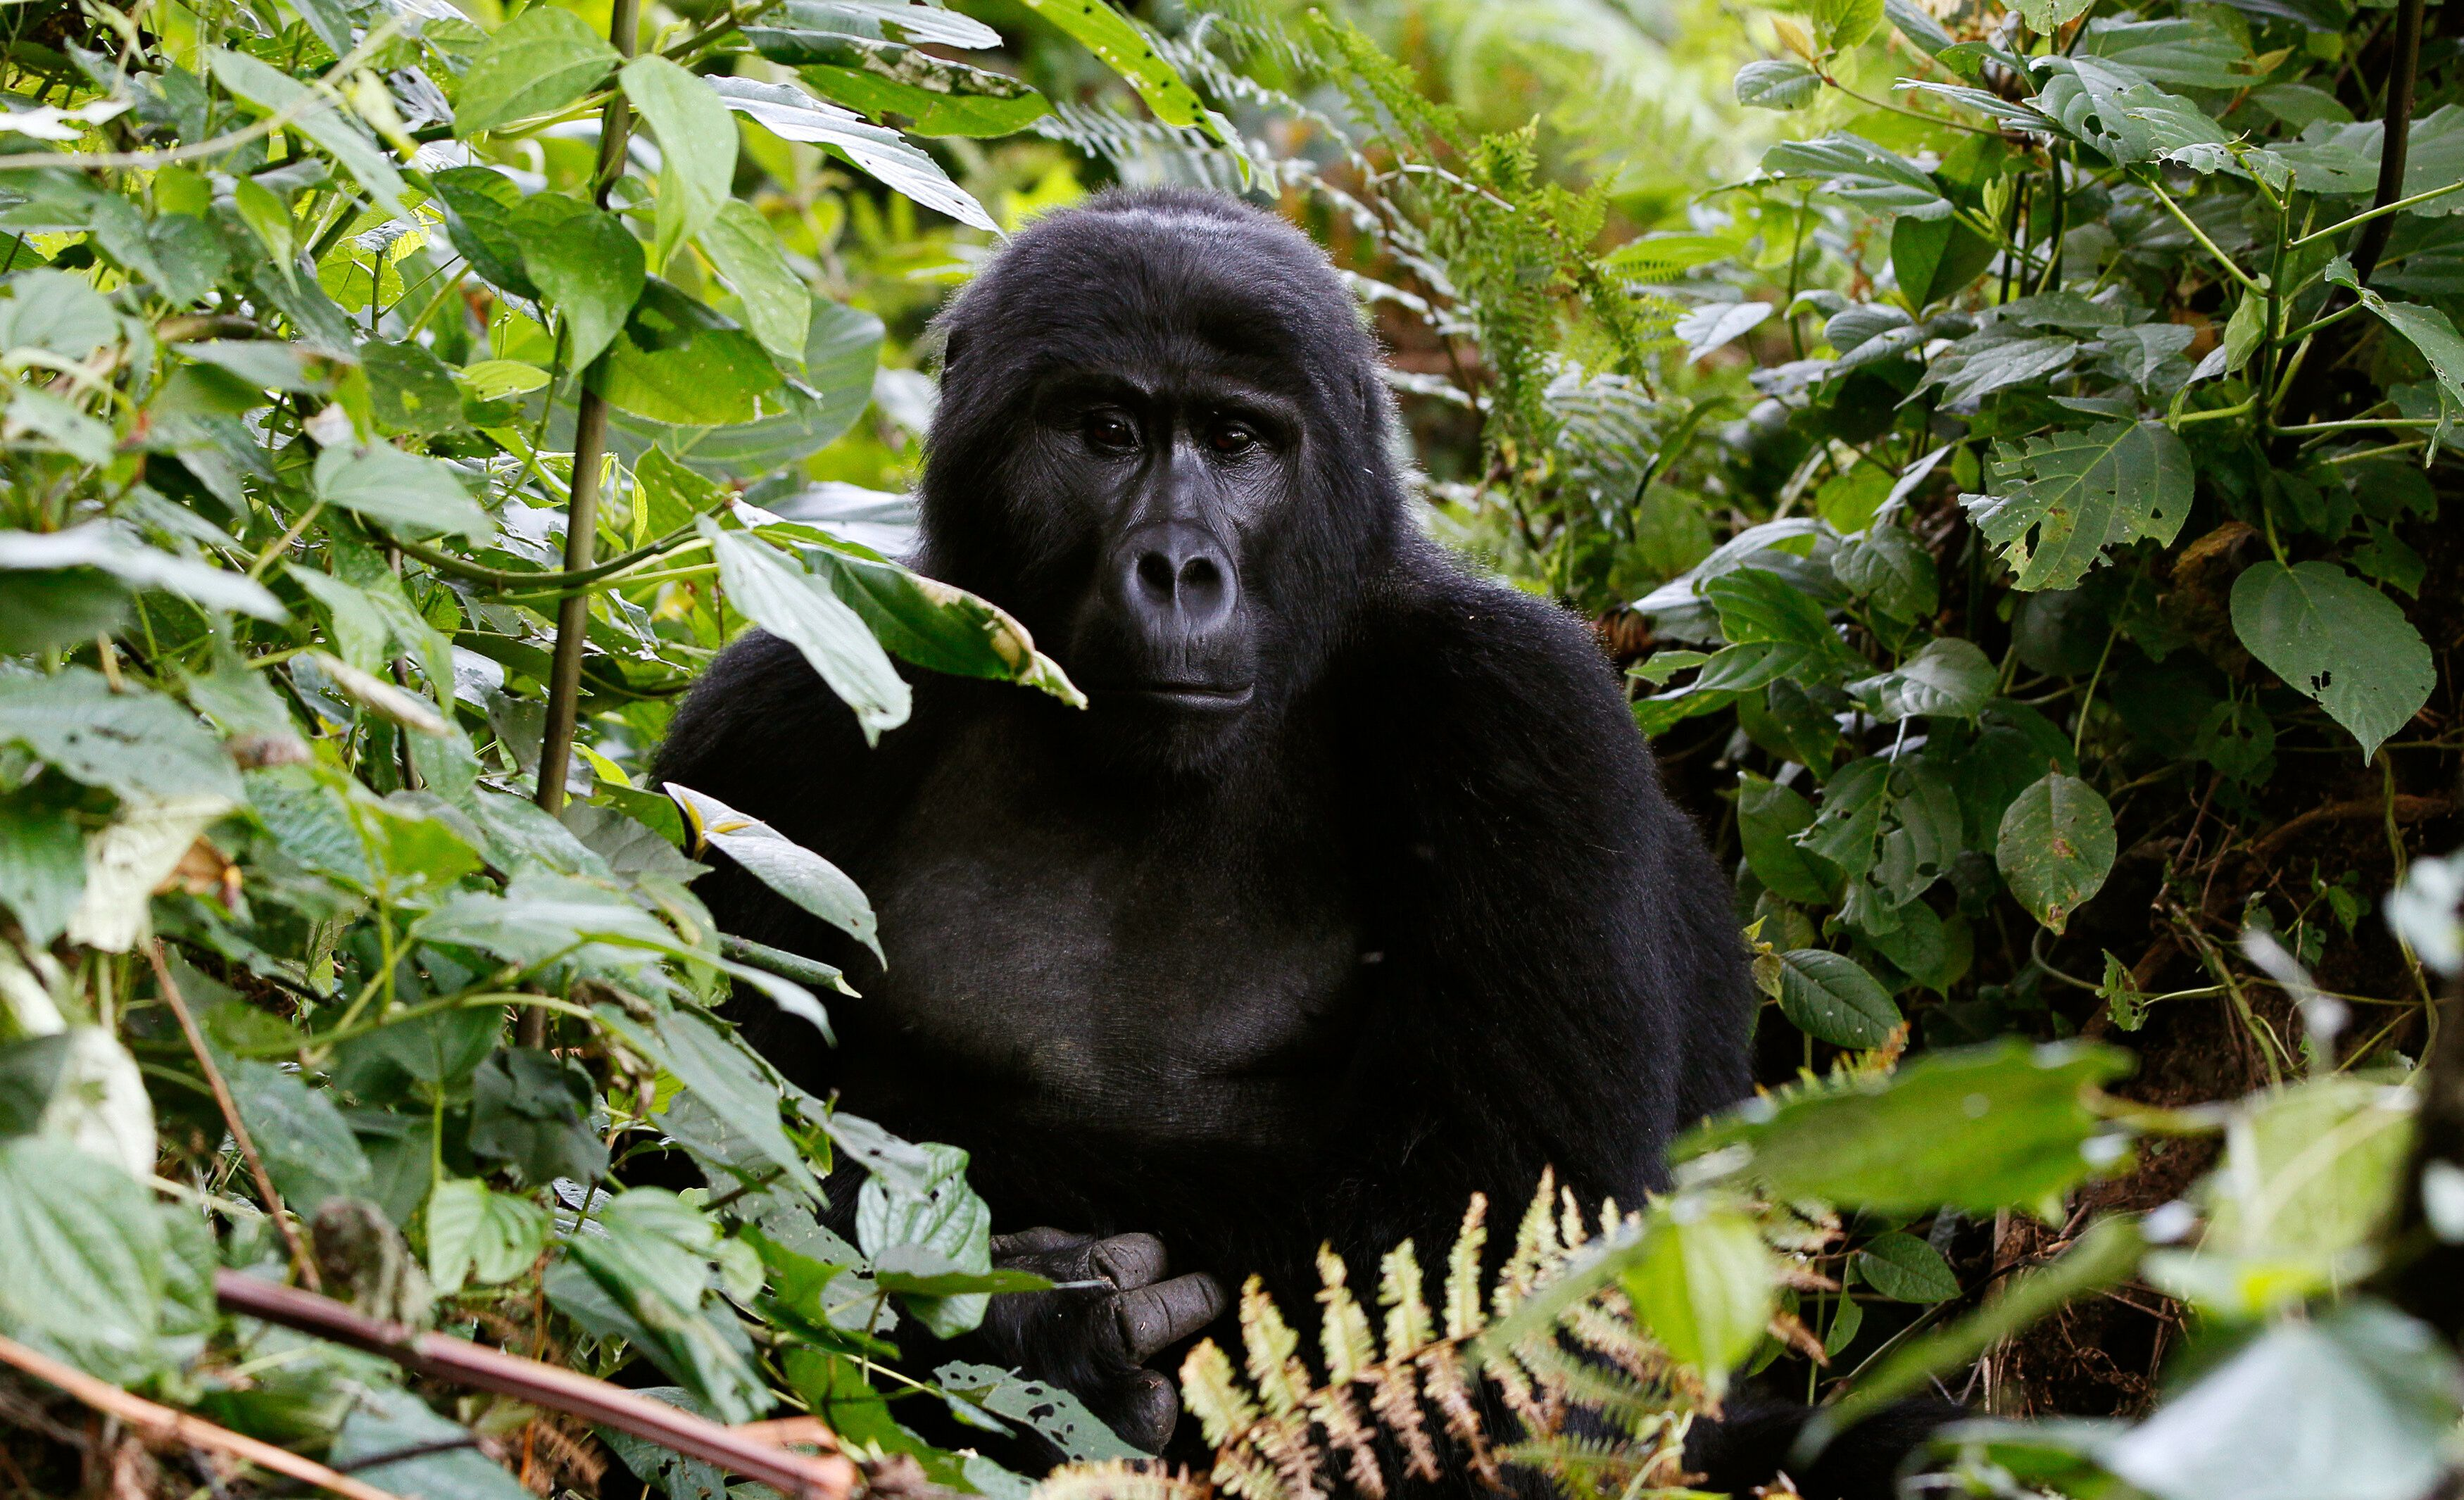 An endangered mountain gorilla from the Bitukura family, rests among vegetation inside a forest in Bwindi Impenetrable Nation